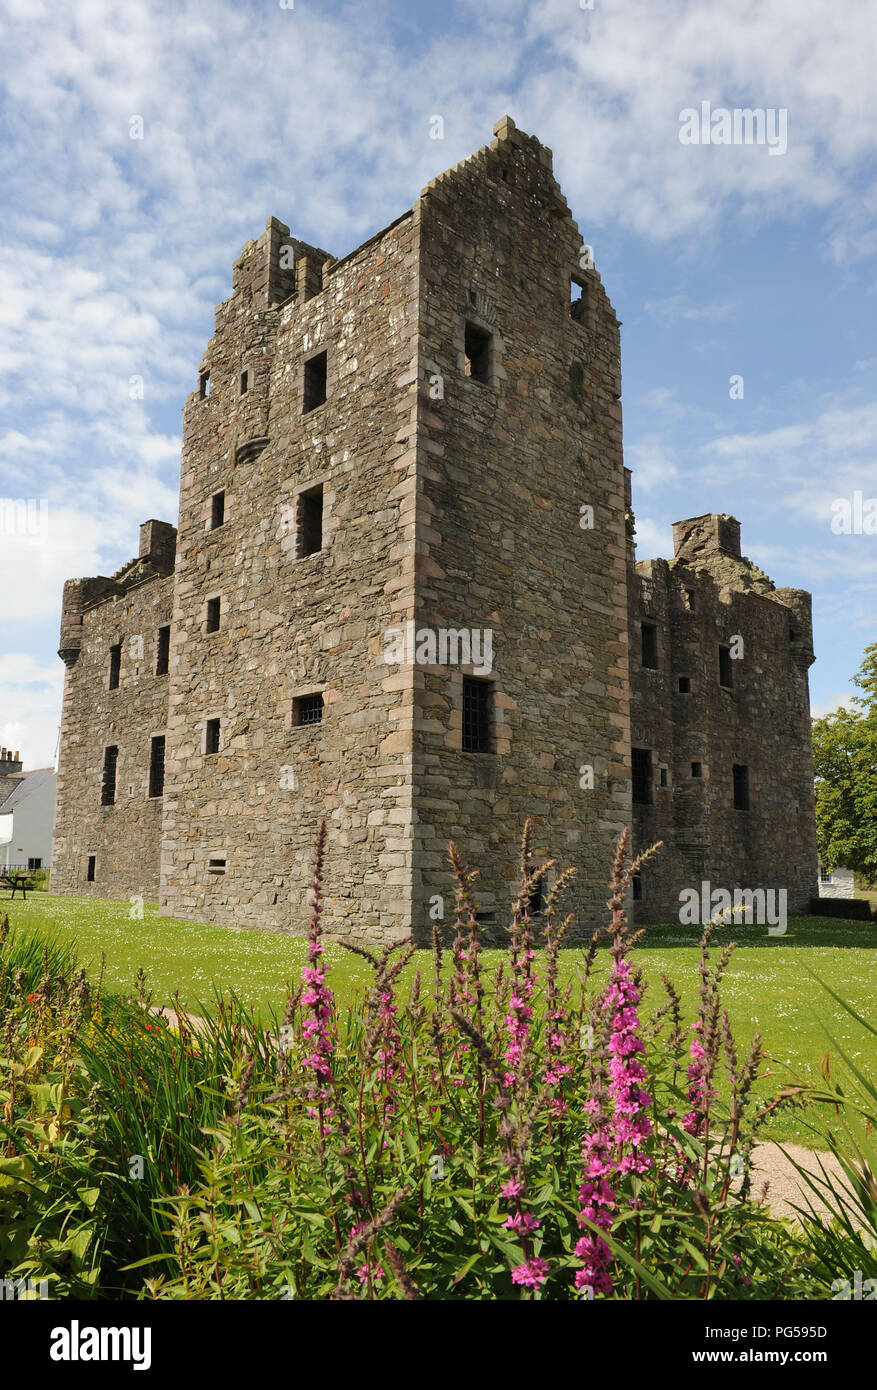 MacLlellan's Castle, Kirkcudbright, Dumfries and Galloway, SW Scotland. Photographed in summer with pink delphiniums in the foreground. Upright format - Stock Image